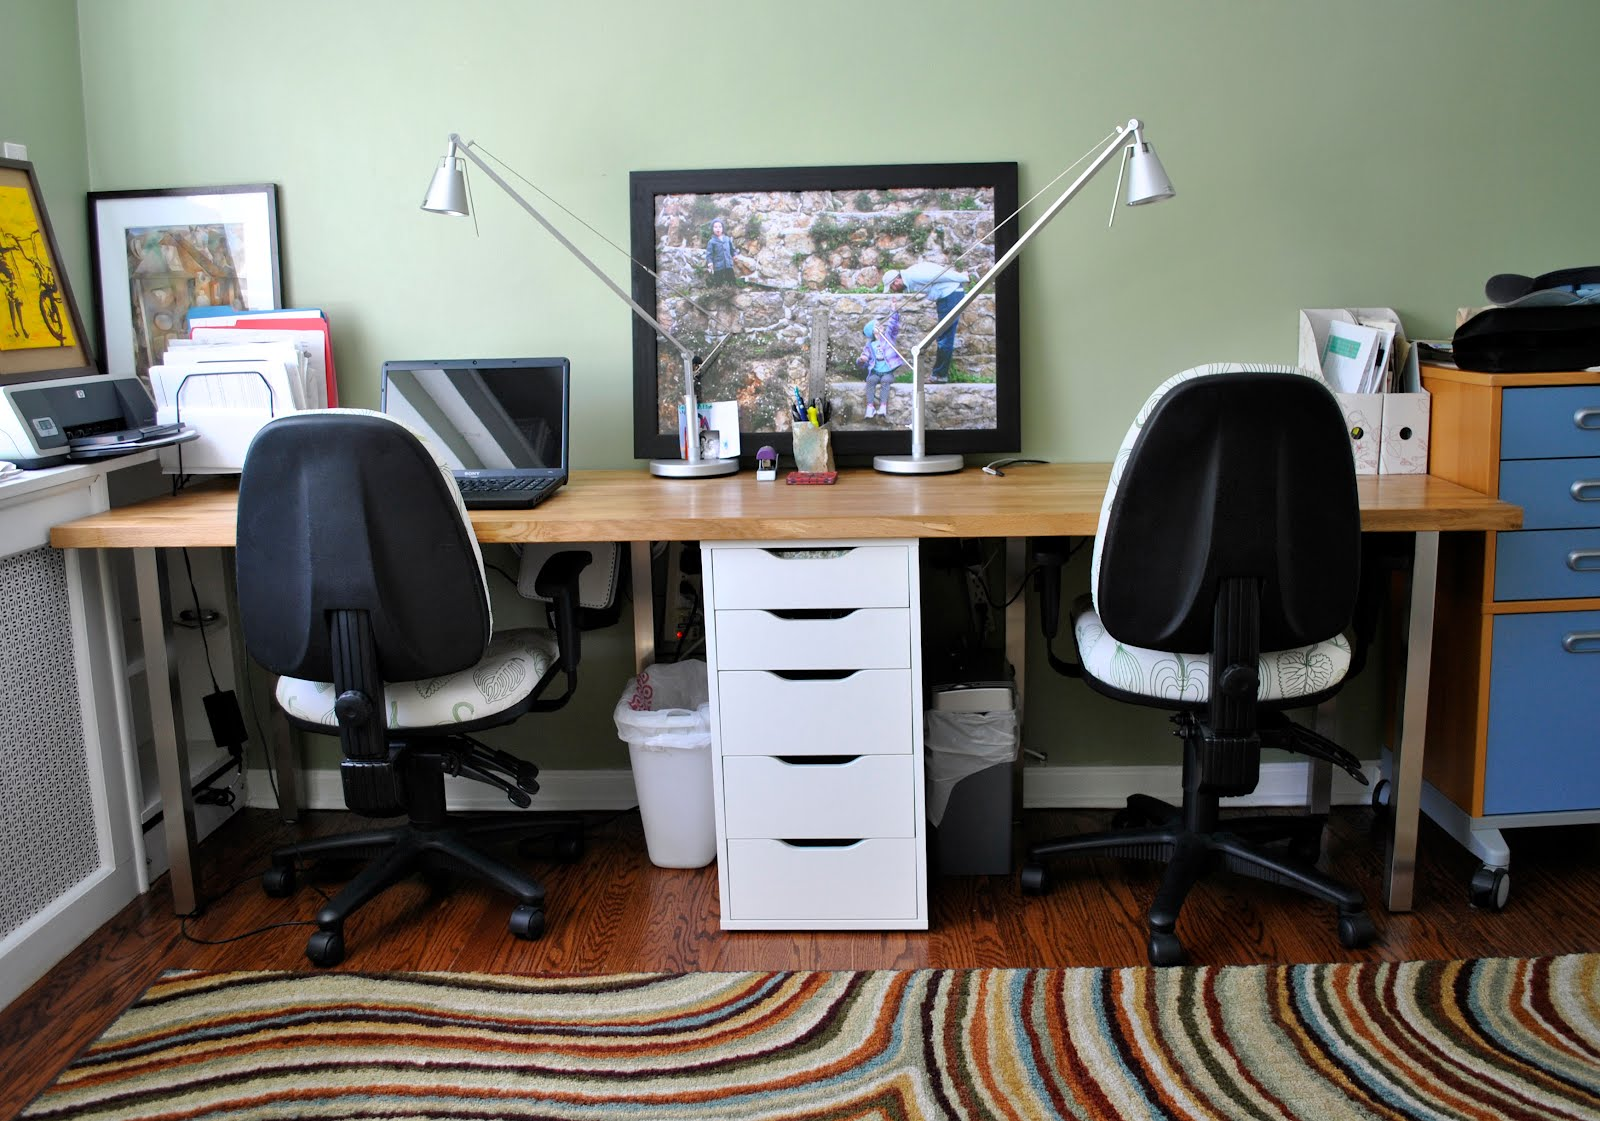 Double Home Office Desk Rousing And Smart Home Office Ideas With 2 Person Desk At